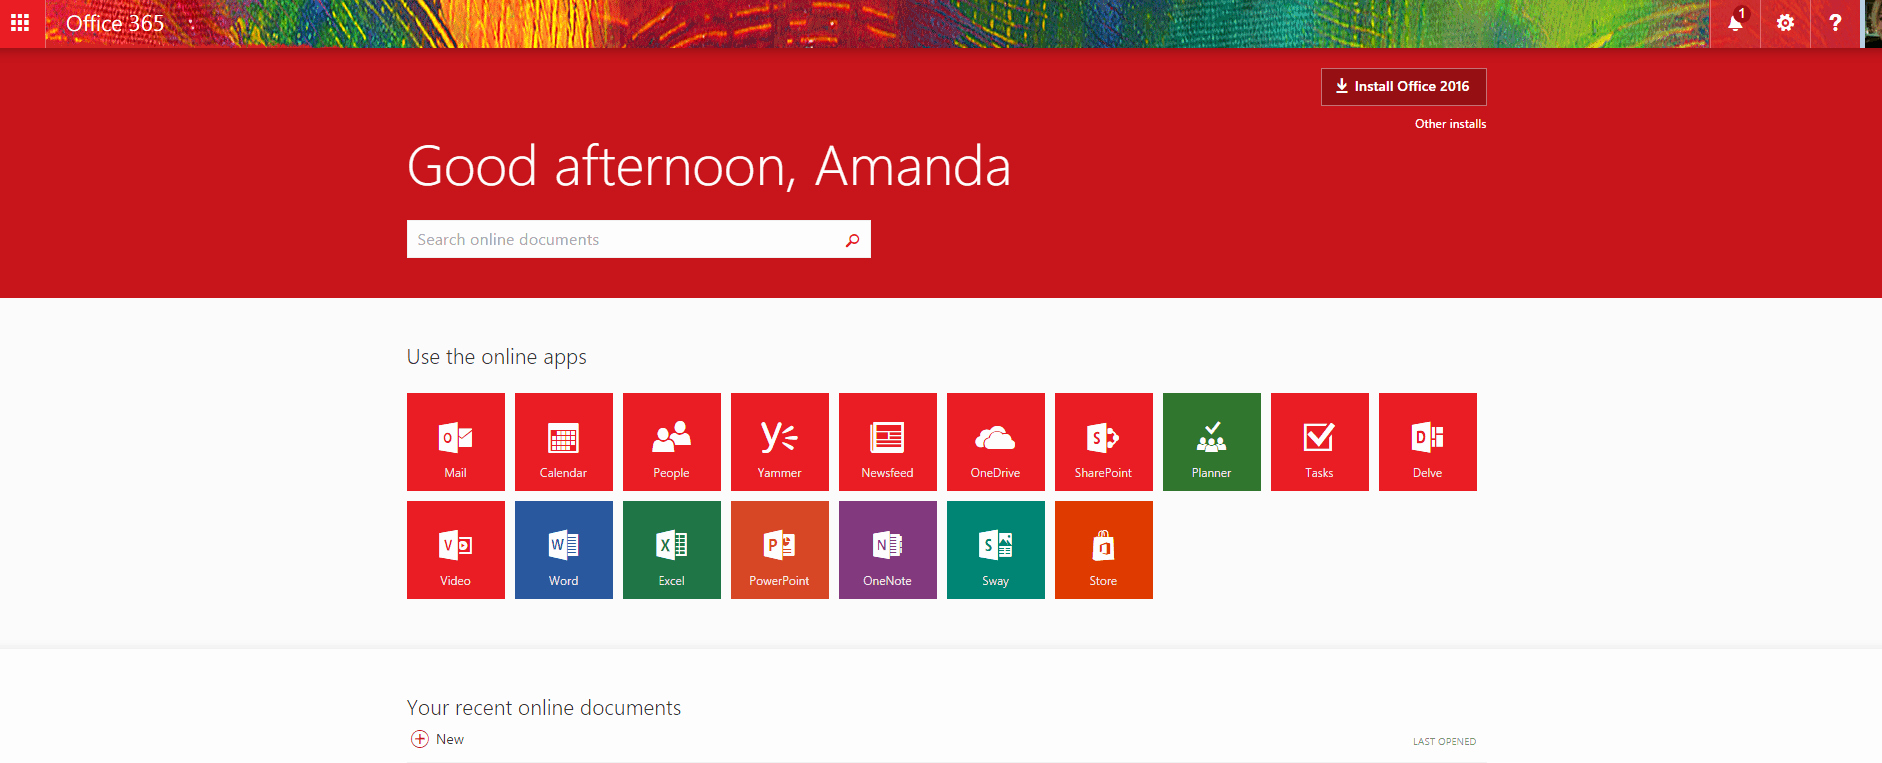 Microsoft 365 Email Login Portal Best Of How to Sign Into the Fice 365 Portal Business Puter